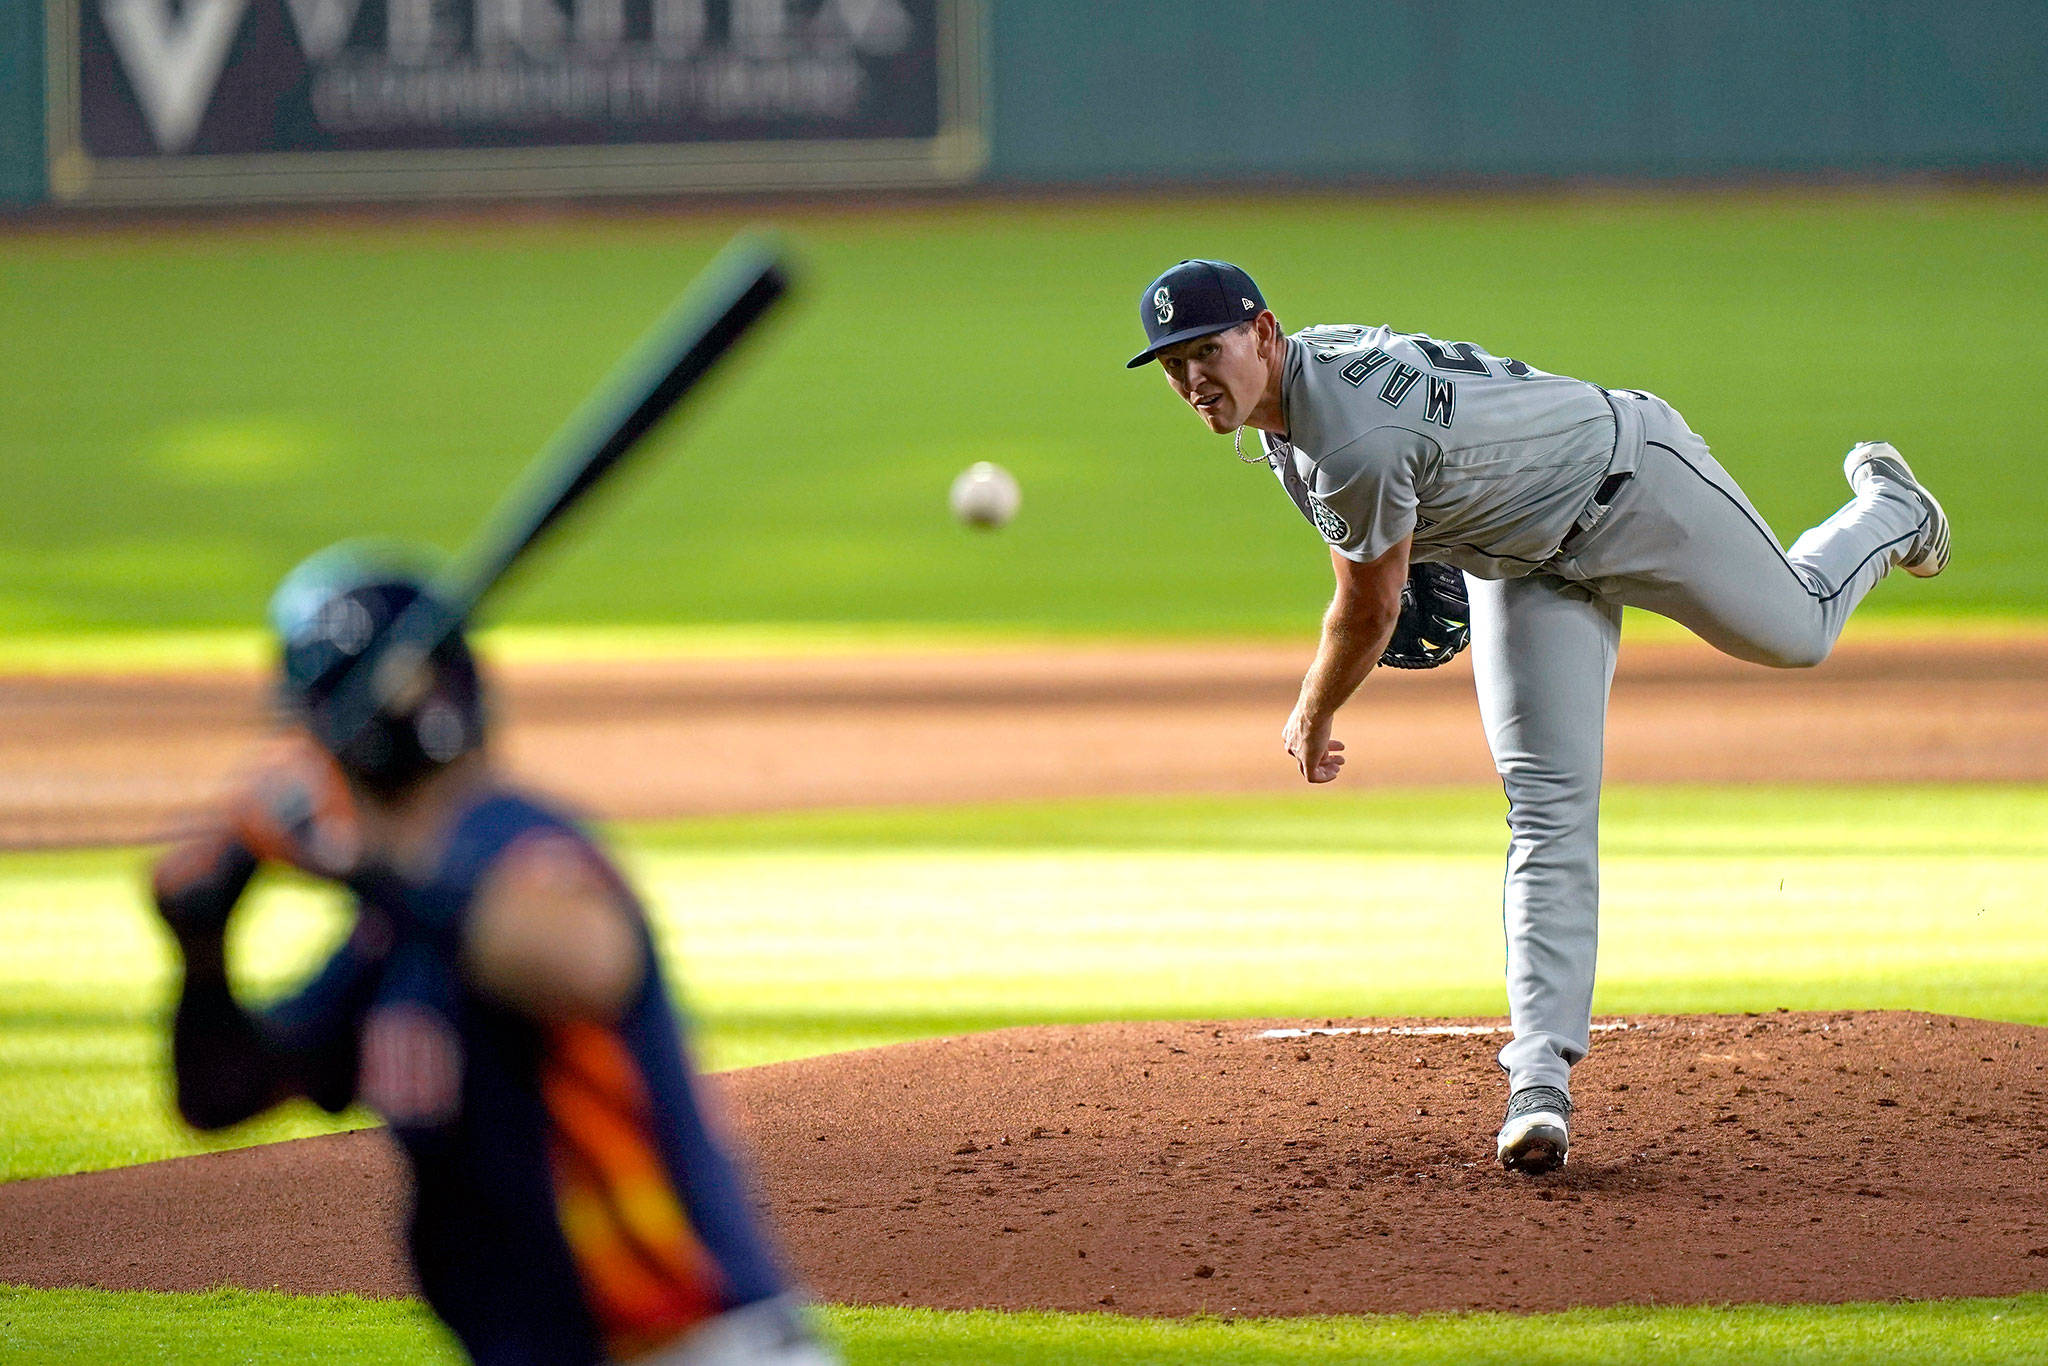 Mariners starting pitcher Nick Margevicius throws to the Astros' Josh Reddick during the first inning of a game Aug. 15, 2020, in Houston. (AP Photo/David J. Phillip)